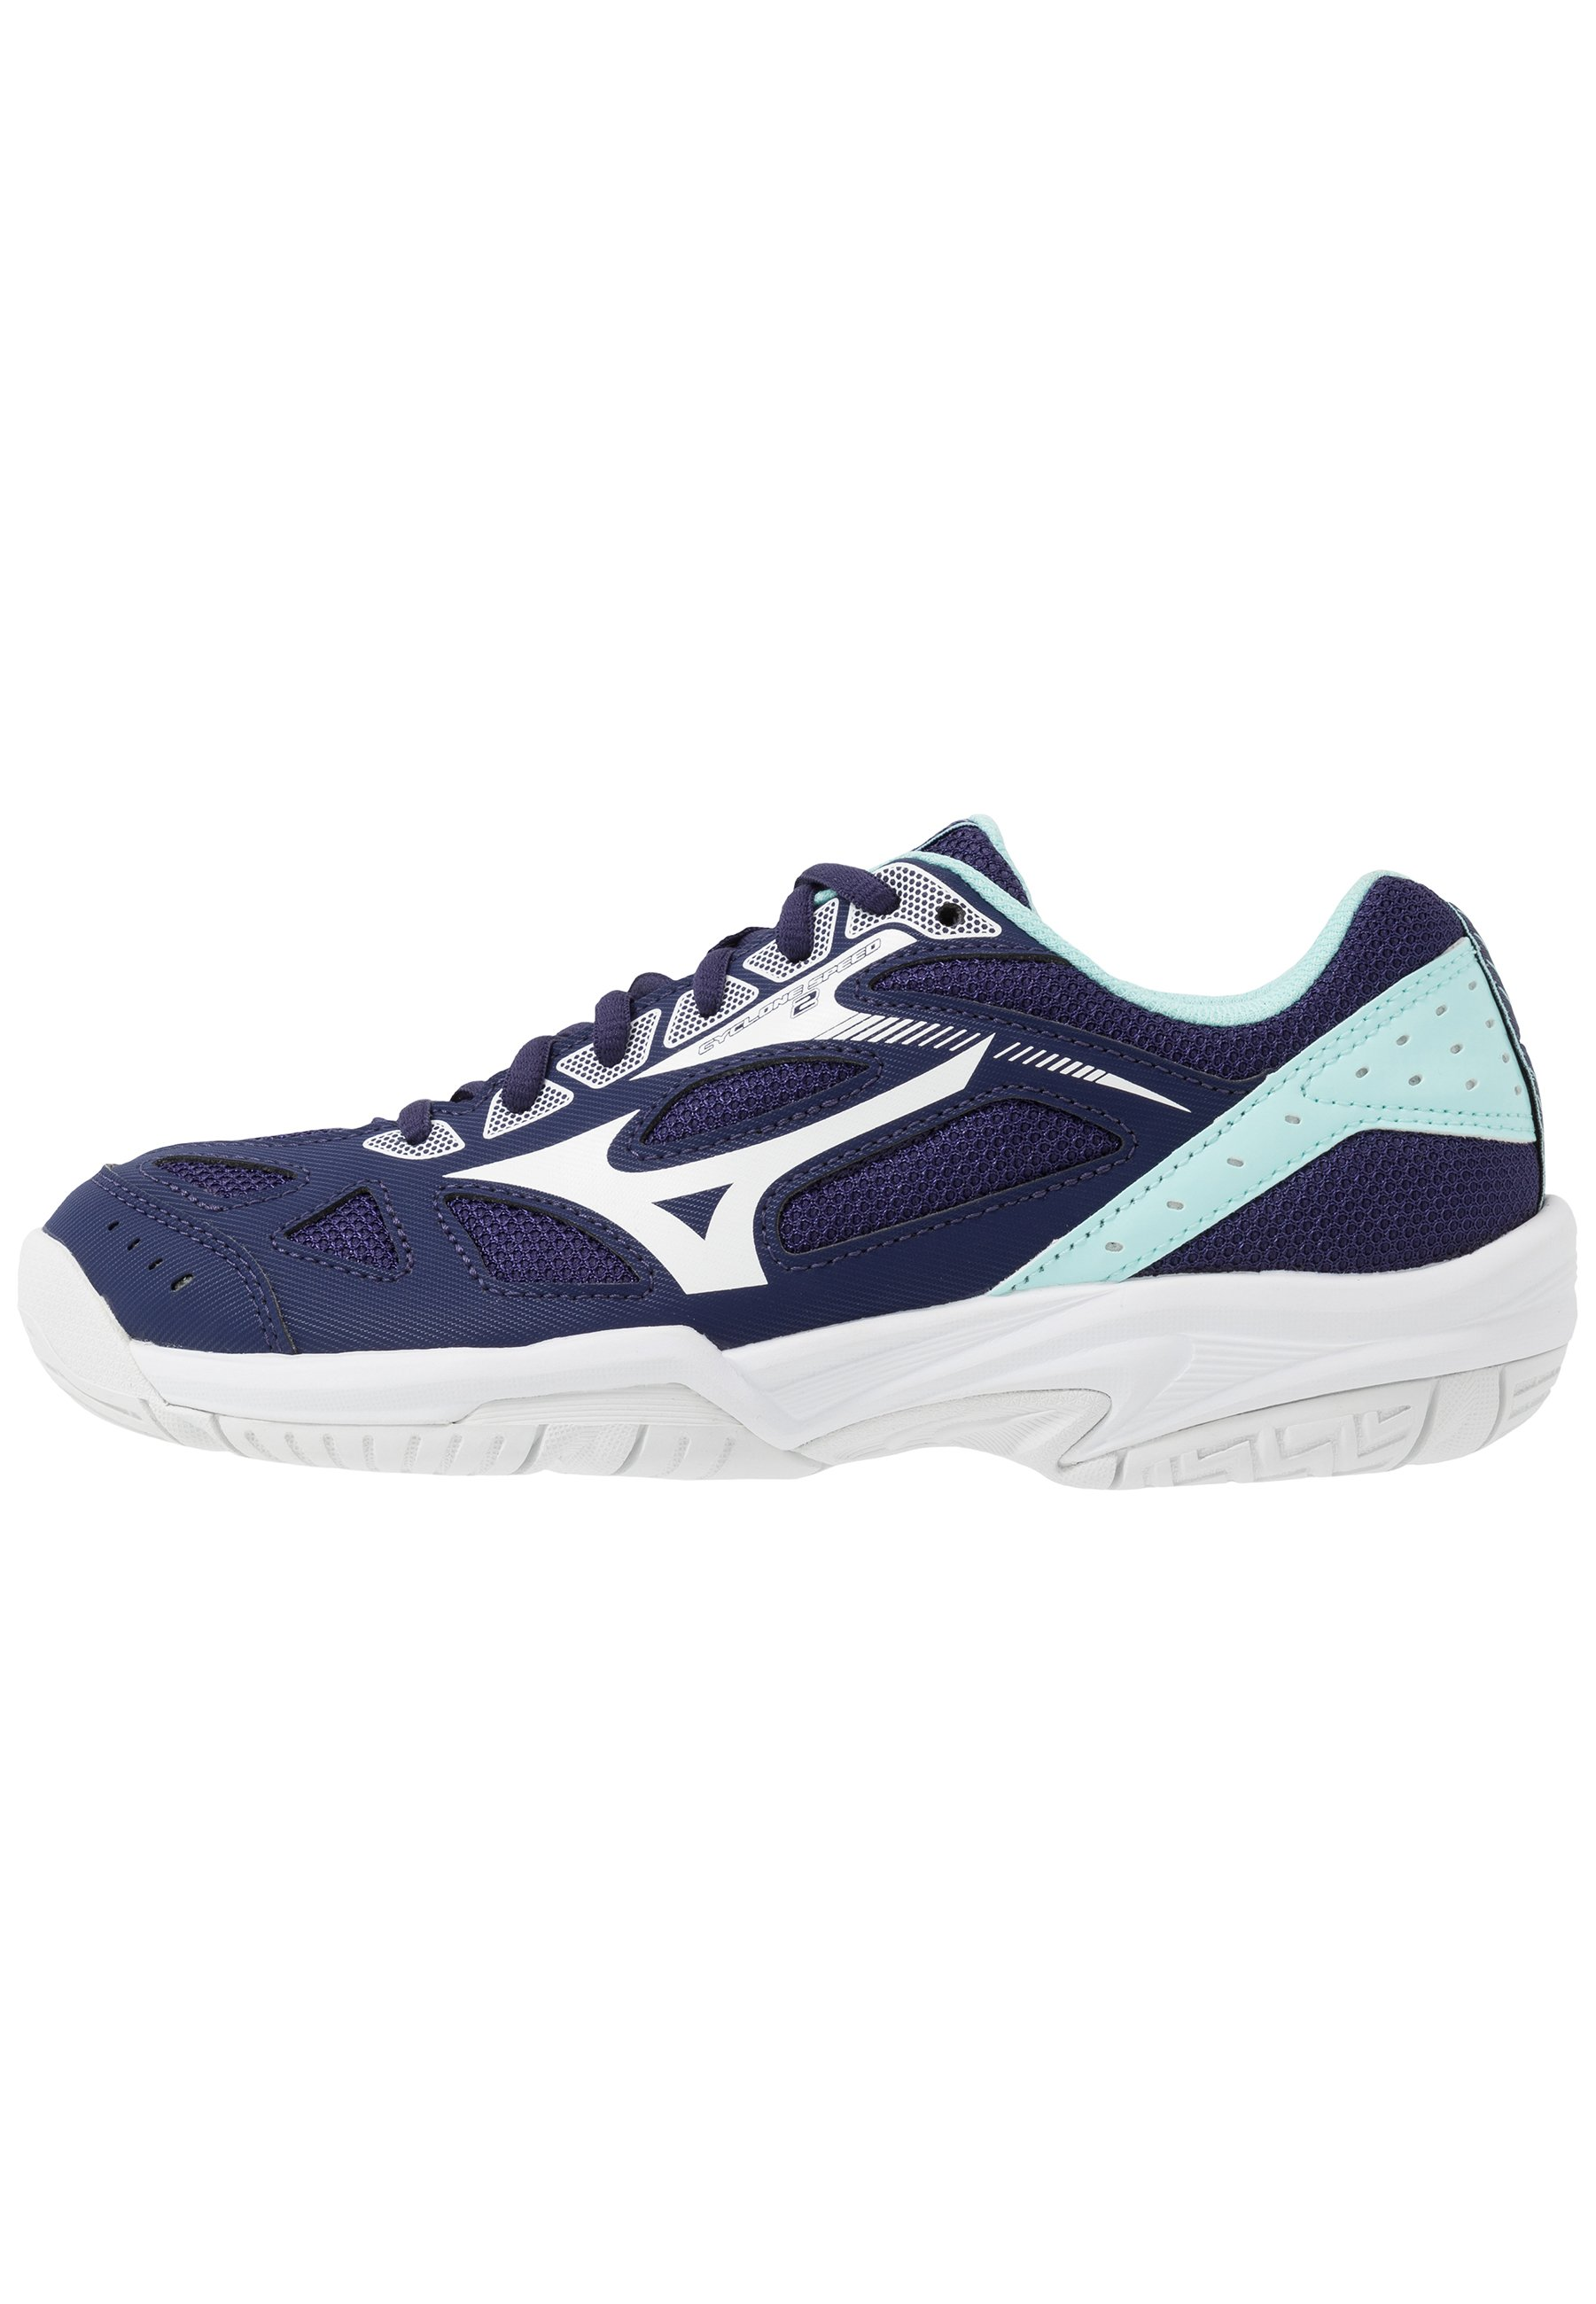 Mizuno Cyclone Speed 2 - Scarpe Da Pallavolo Moonstruck/shadow/fall VOPa7